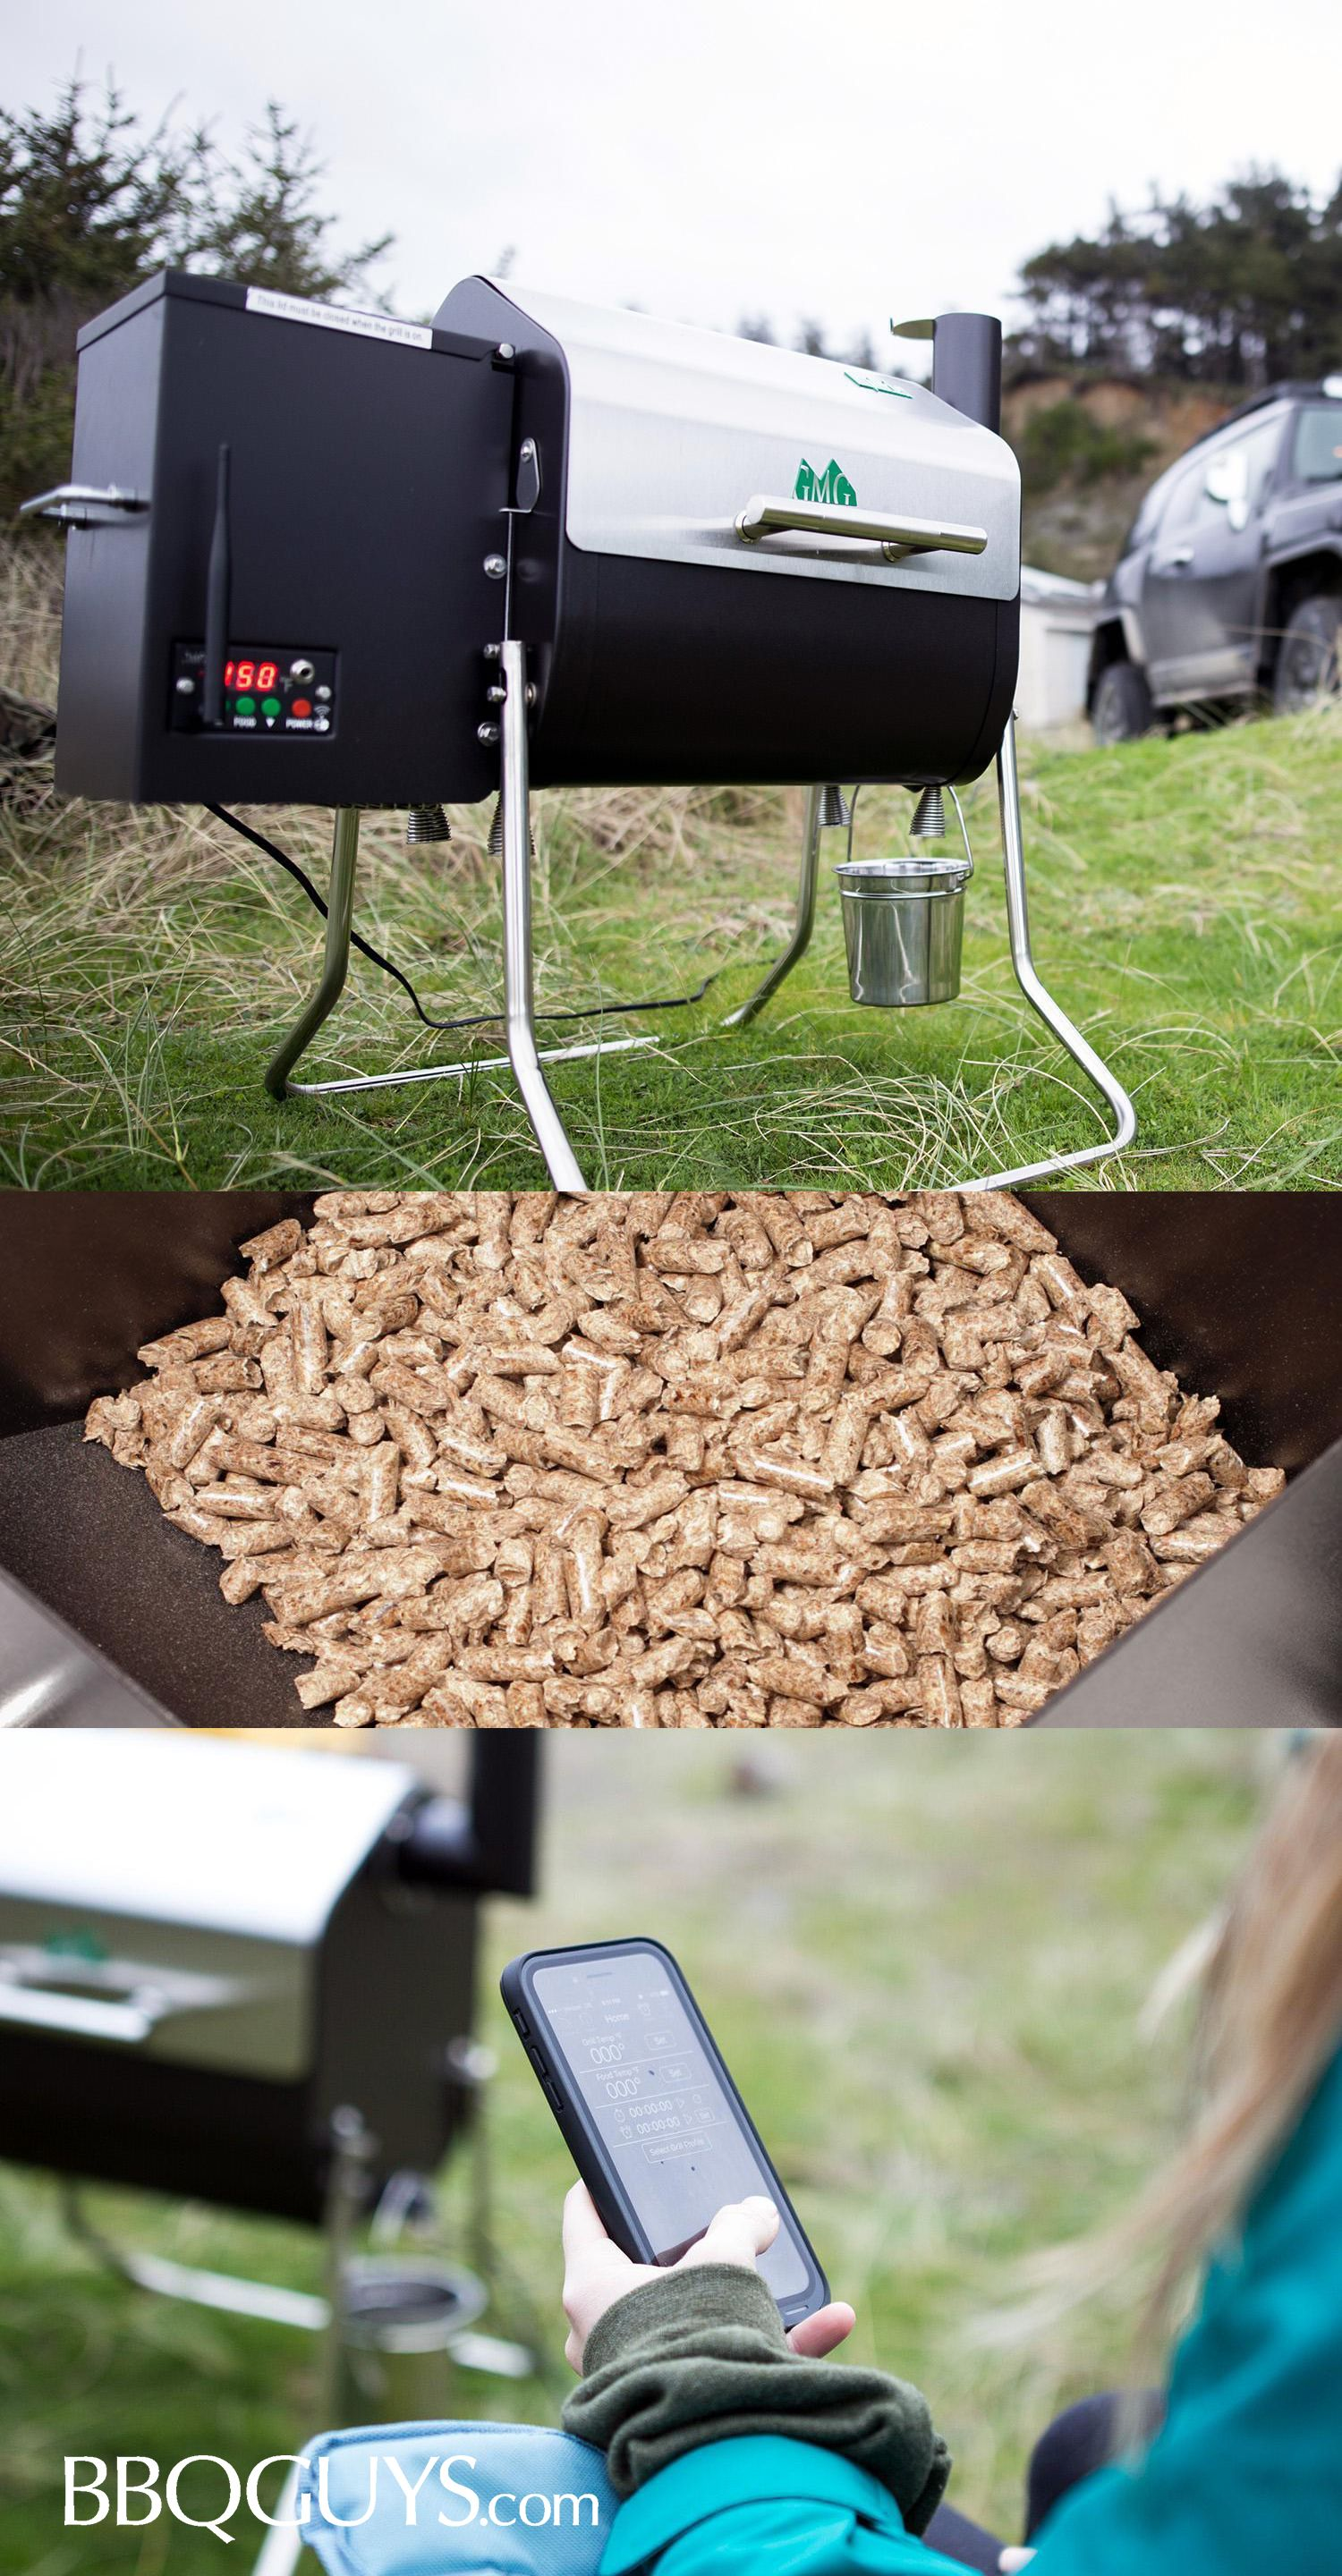 Green Mountain Grills Davy Crockett Wifi Controlled Portable Wood Pellet Grill Dcwf Bbqguys Green Mountain Grills Wood Pellet Grills Green Mountain